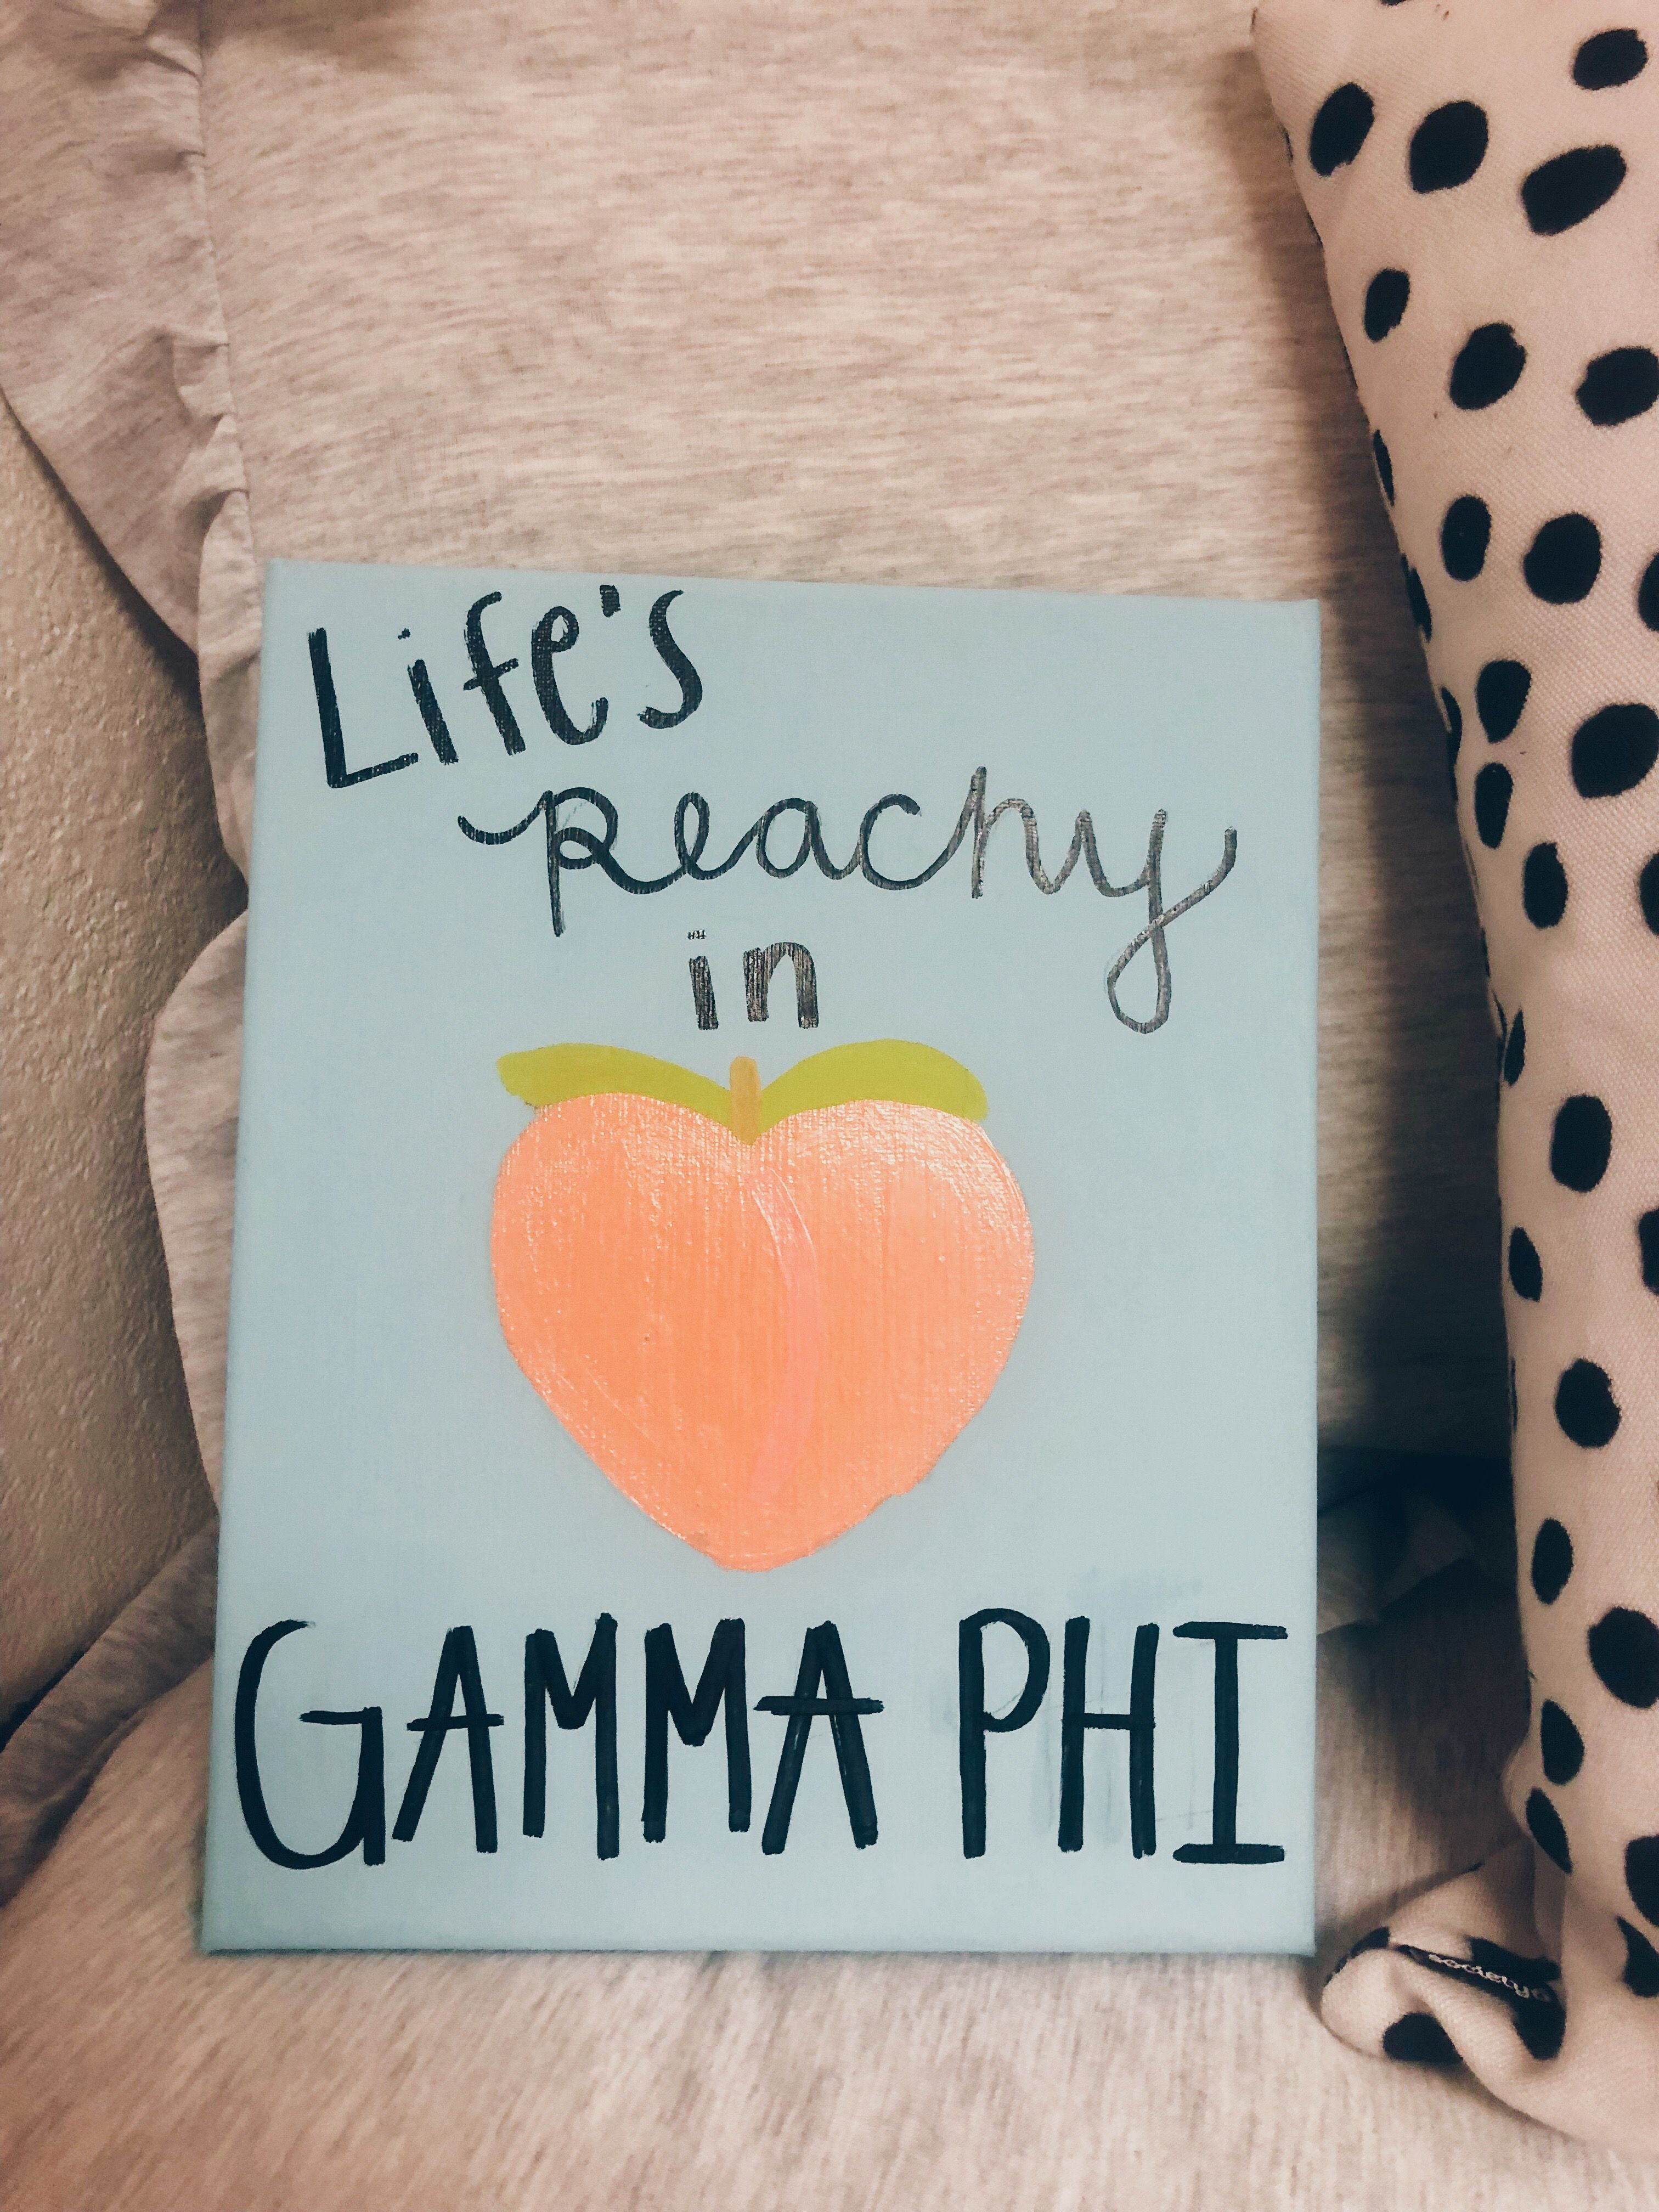 Life's Peachy in Gamma Phi — big/little sorority canvas